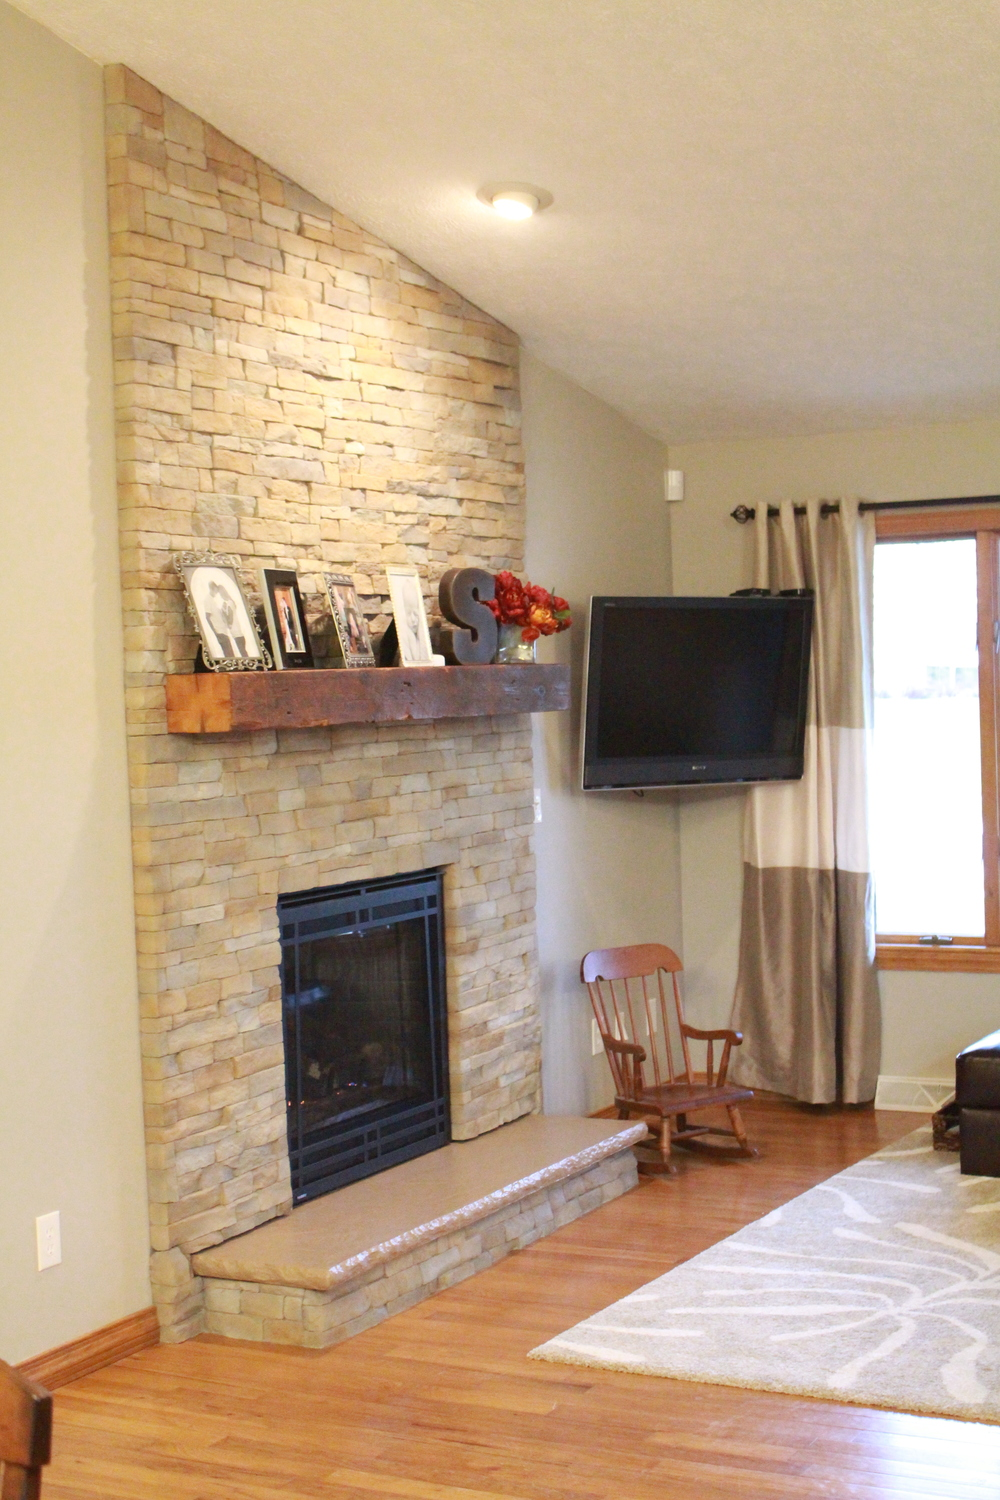 After: The addition of the faux-brick surround makes for a homier, more rustic room. Other looks can be achieved using these same materials and methods.